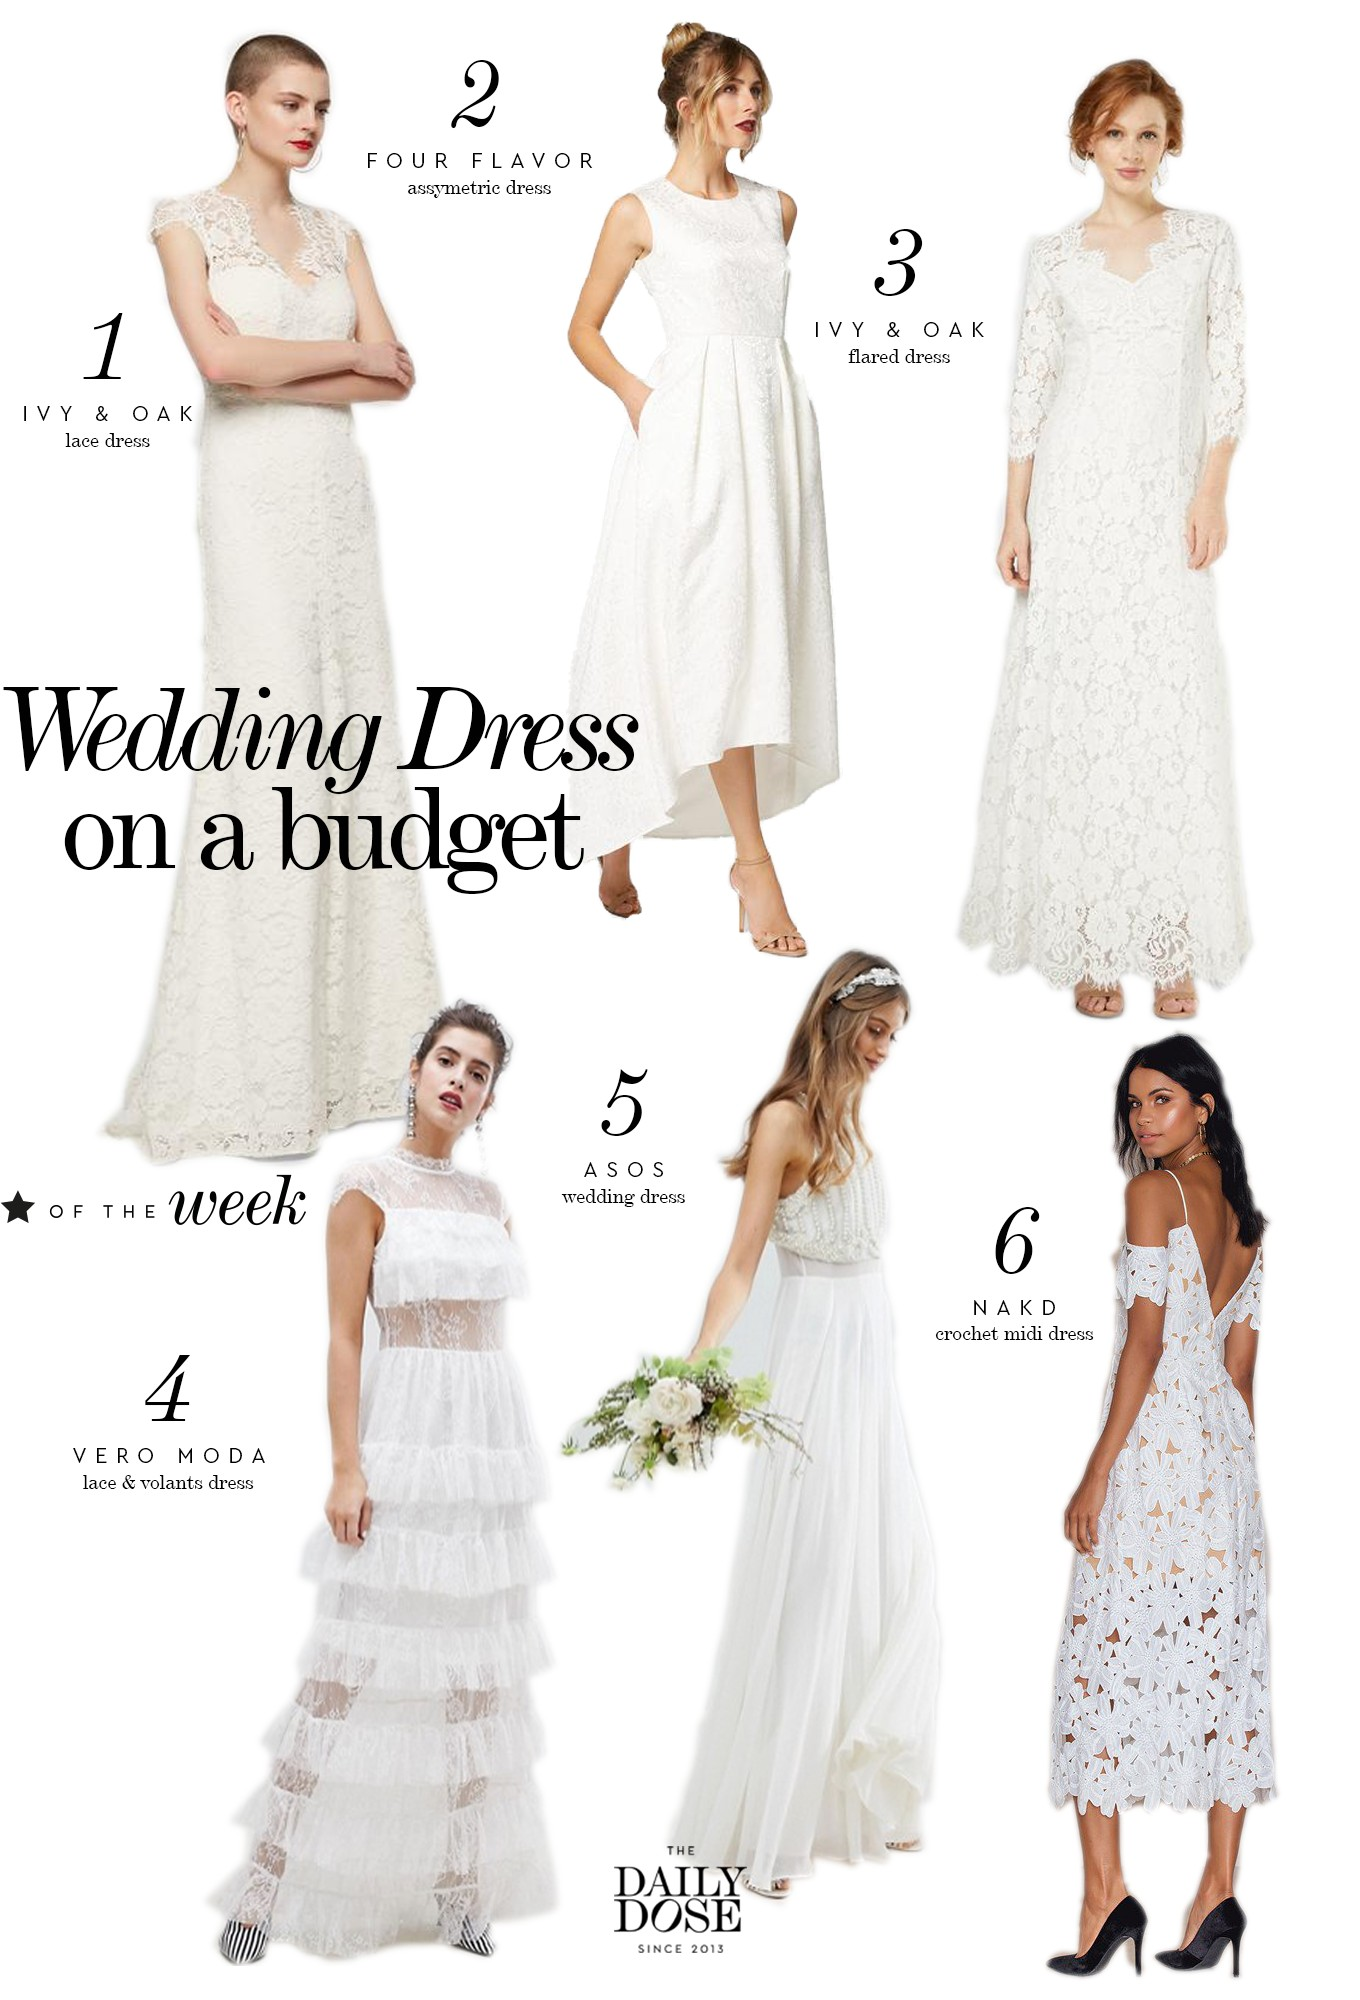 Wedding On A Budget: Bridal Dress For Less - The Daily Dose